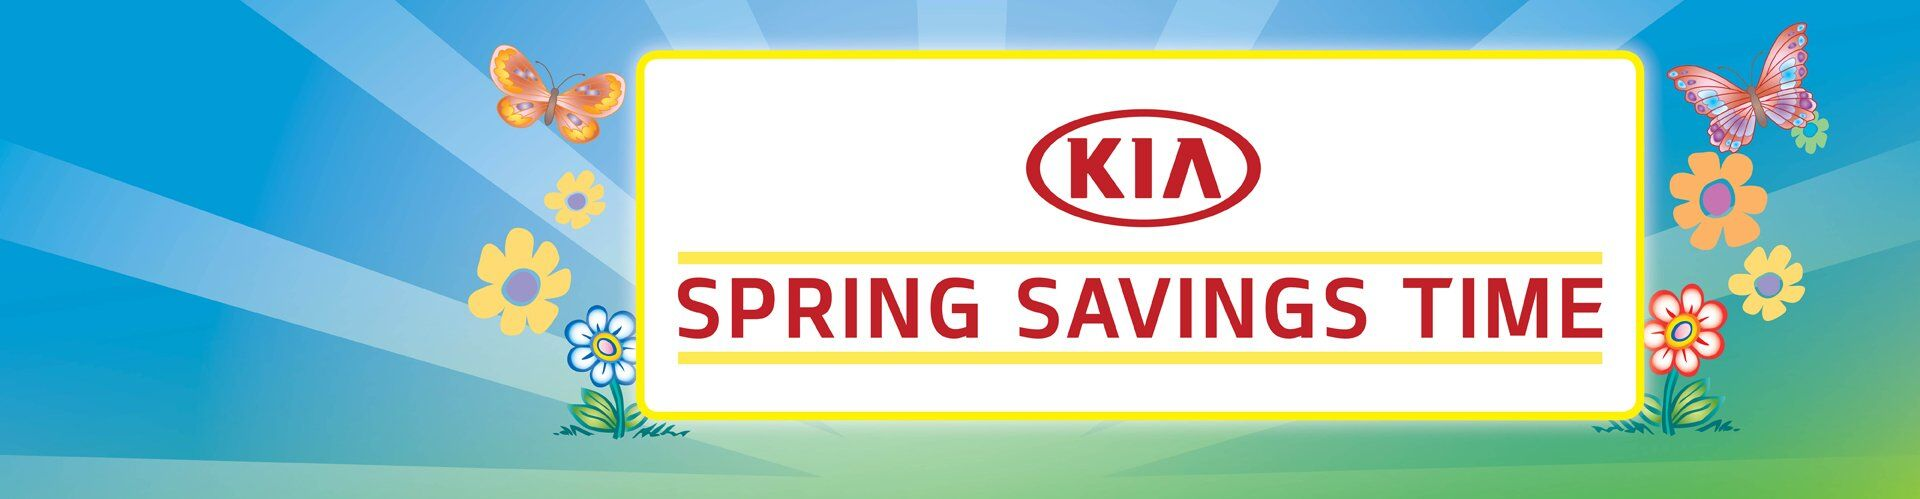 KIA Spring Savings Time!